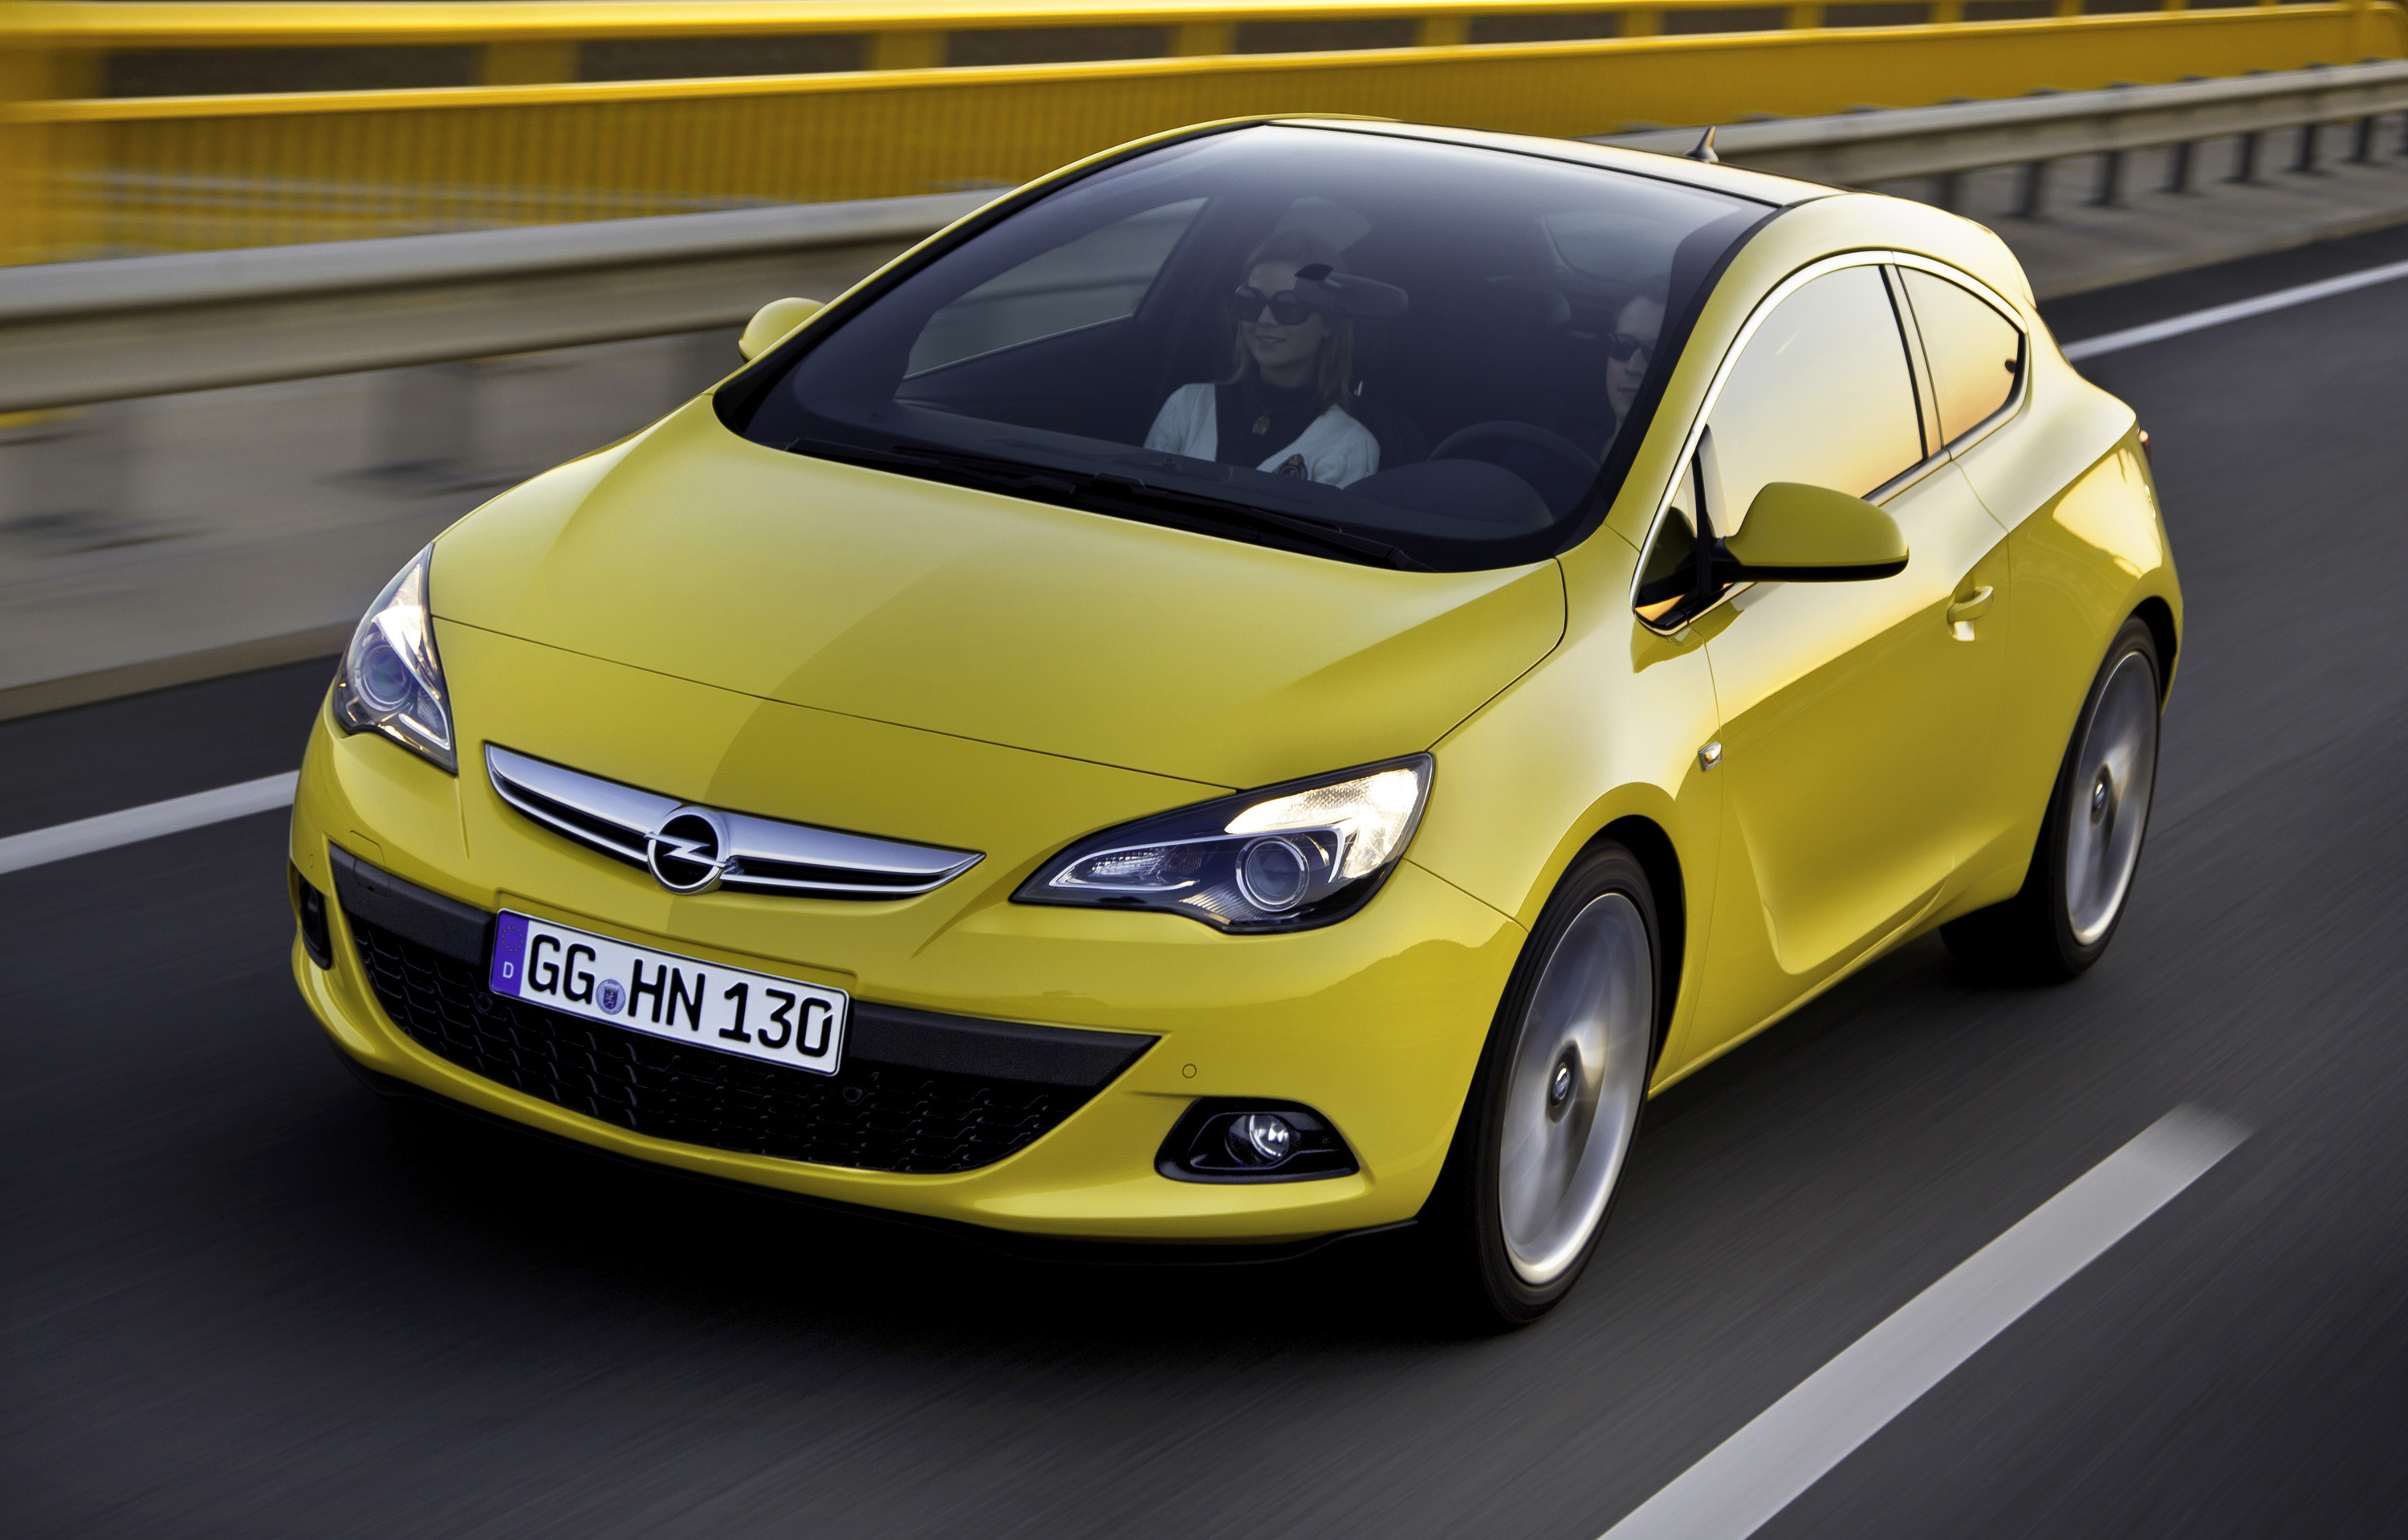 2013 Opel Astra GTC - HD Pictures @ carsinvasion.com